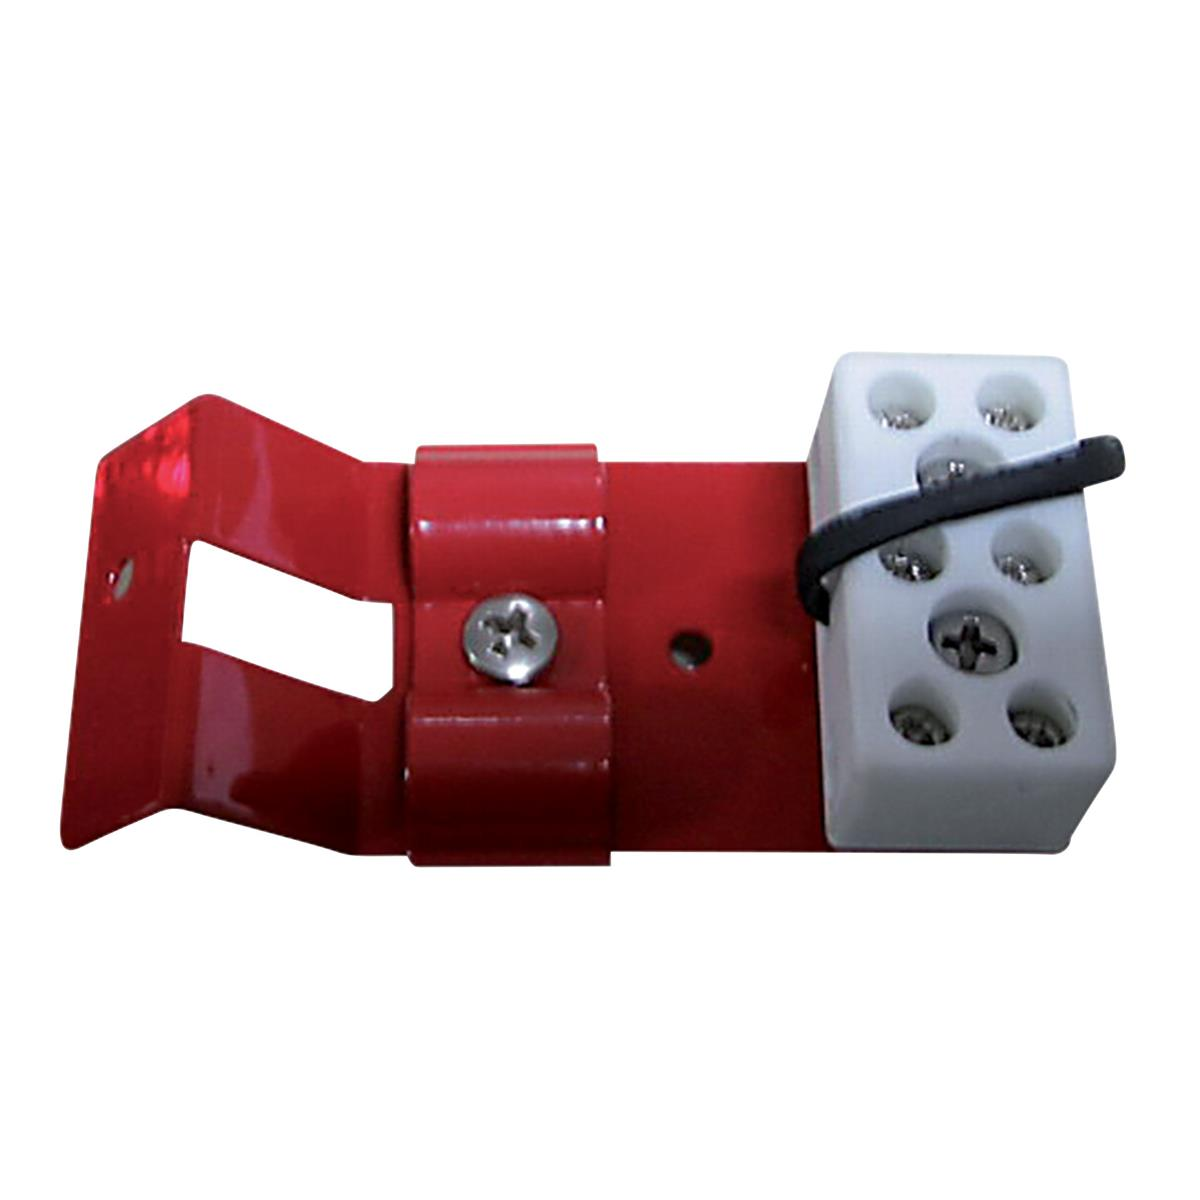 RCF Ceramic terminal block with thermal fuse